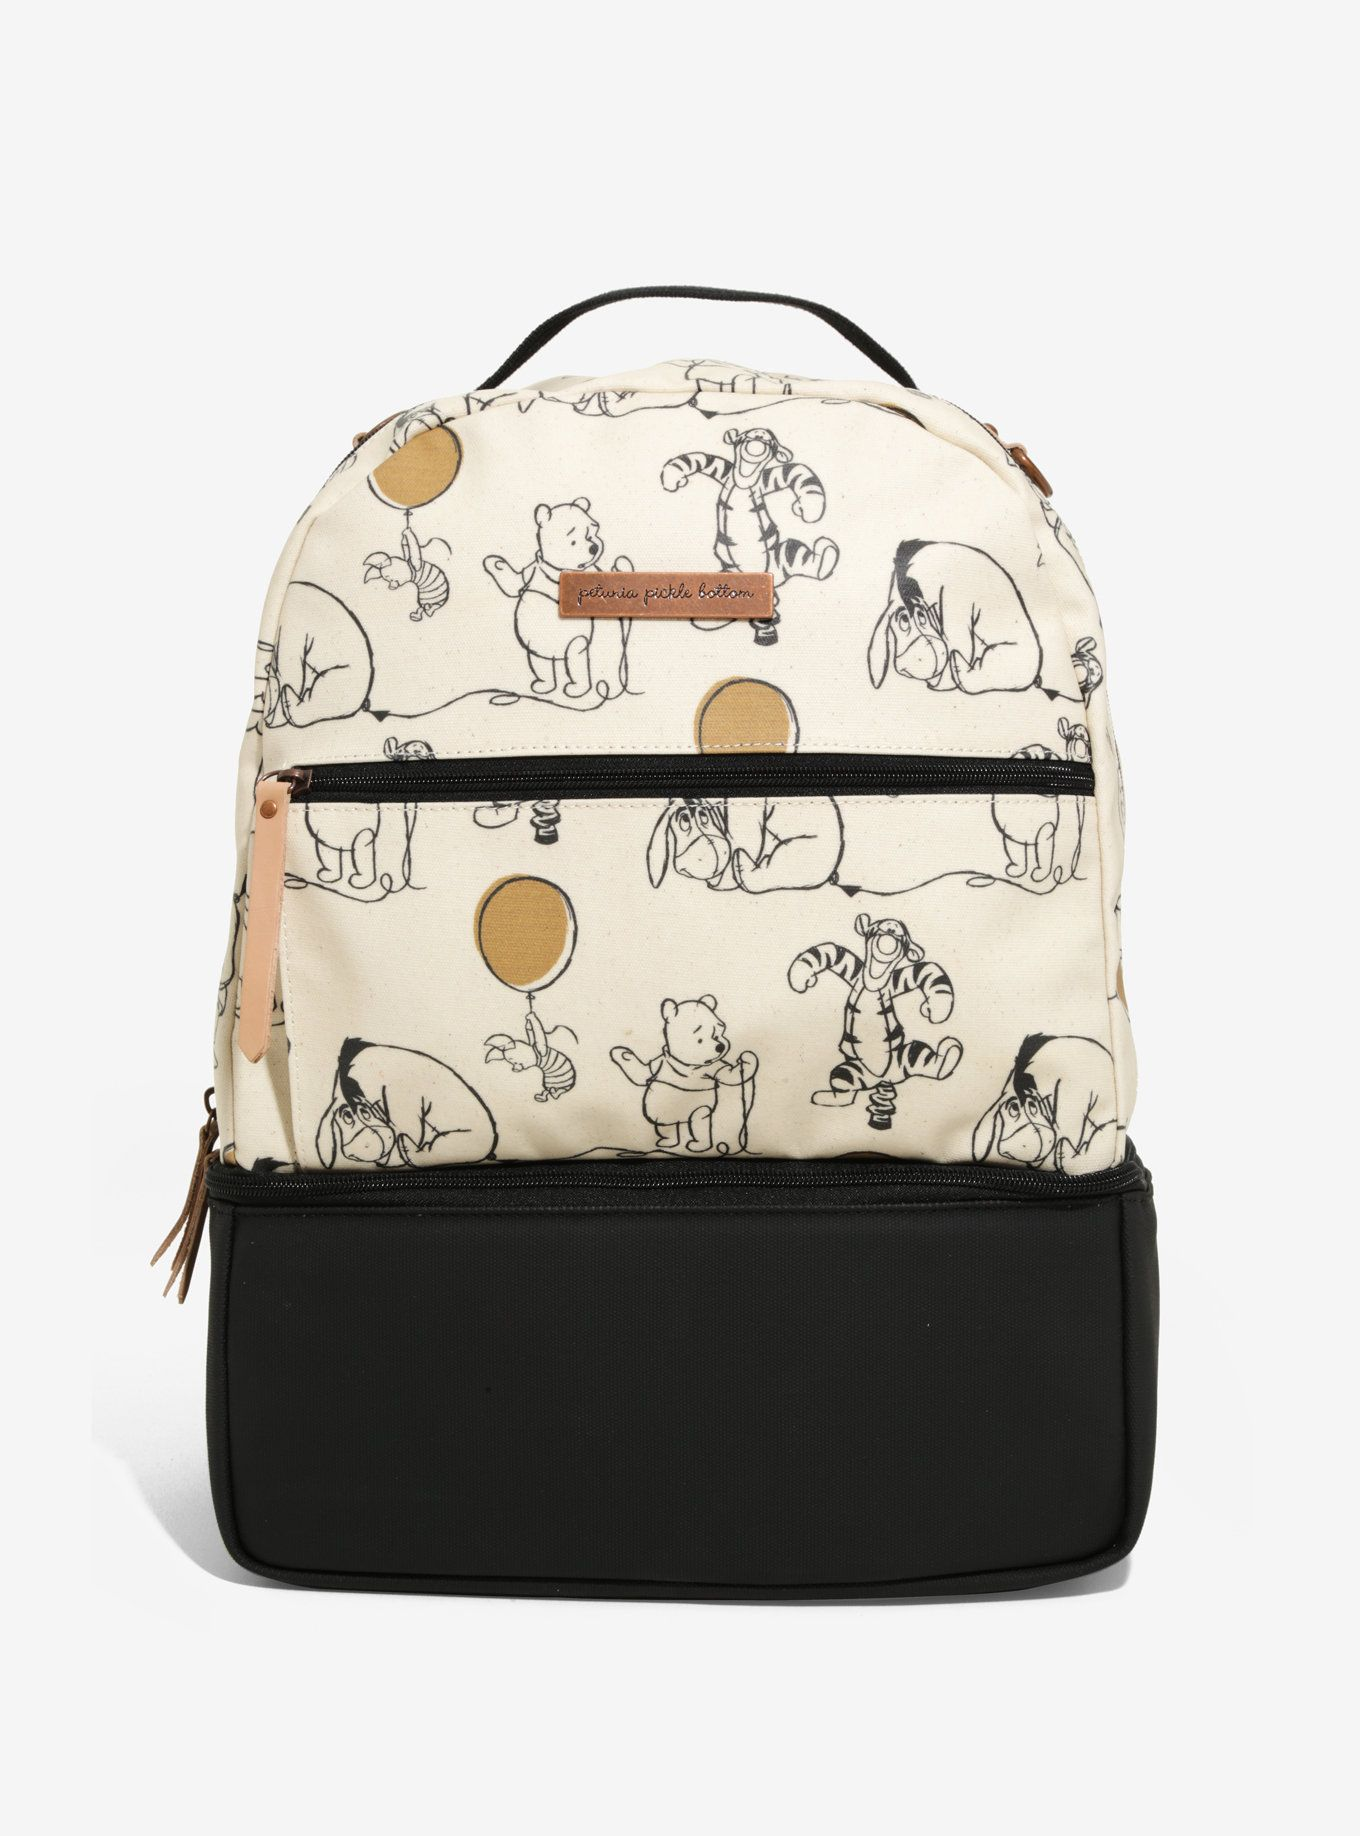 f241d1e3cd6 Petunia Pickle Bottom Disney Winnie The Pooh Axis Backpack ...